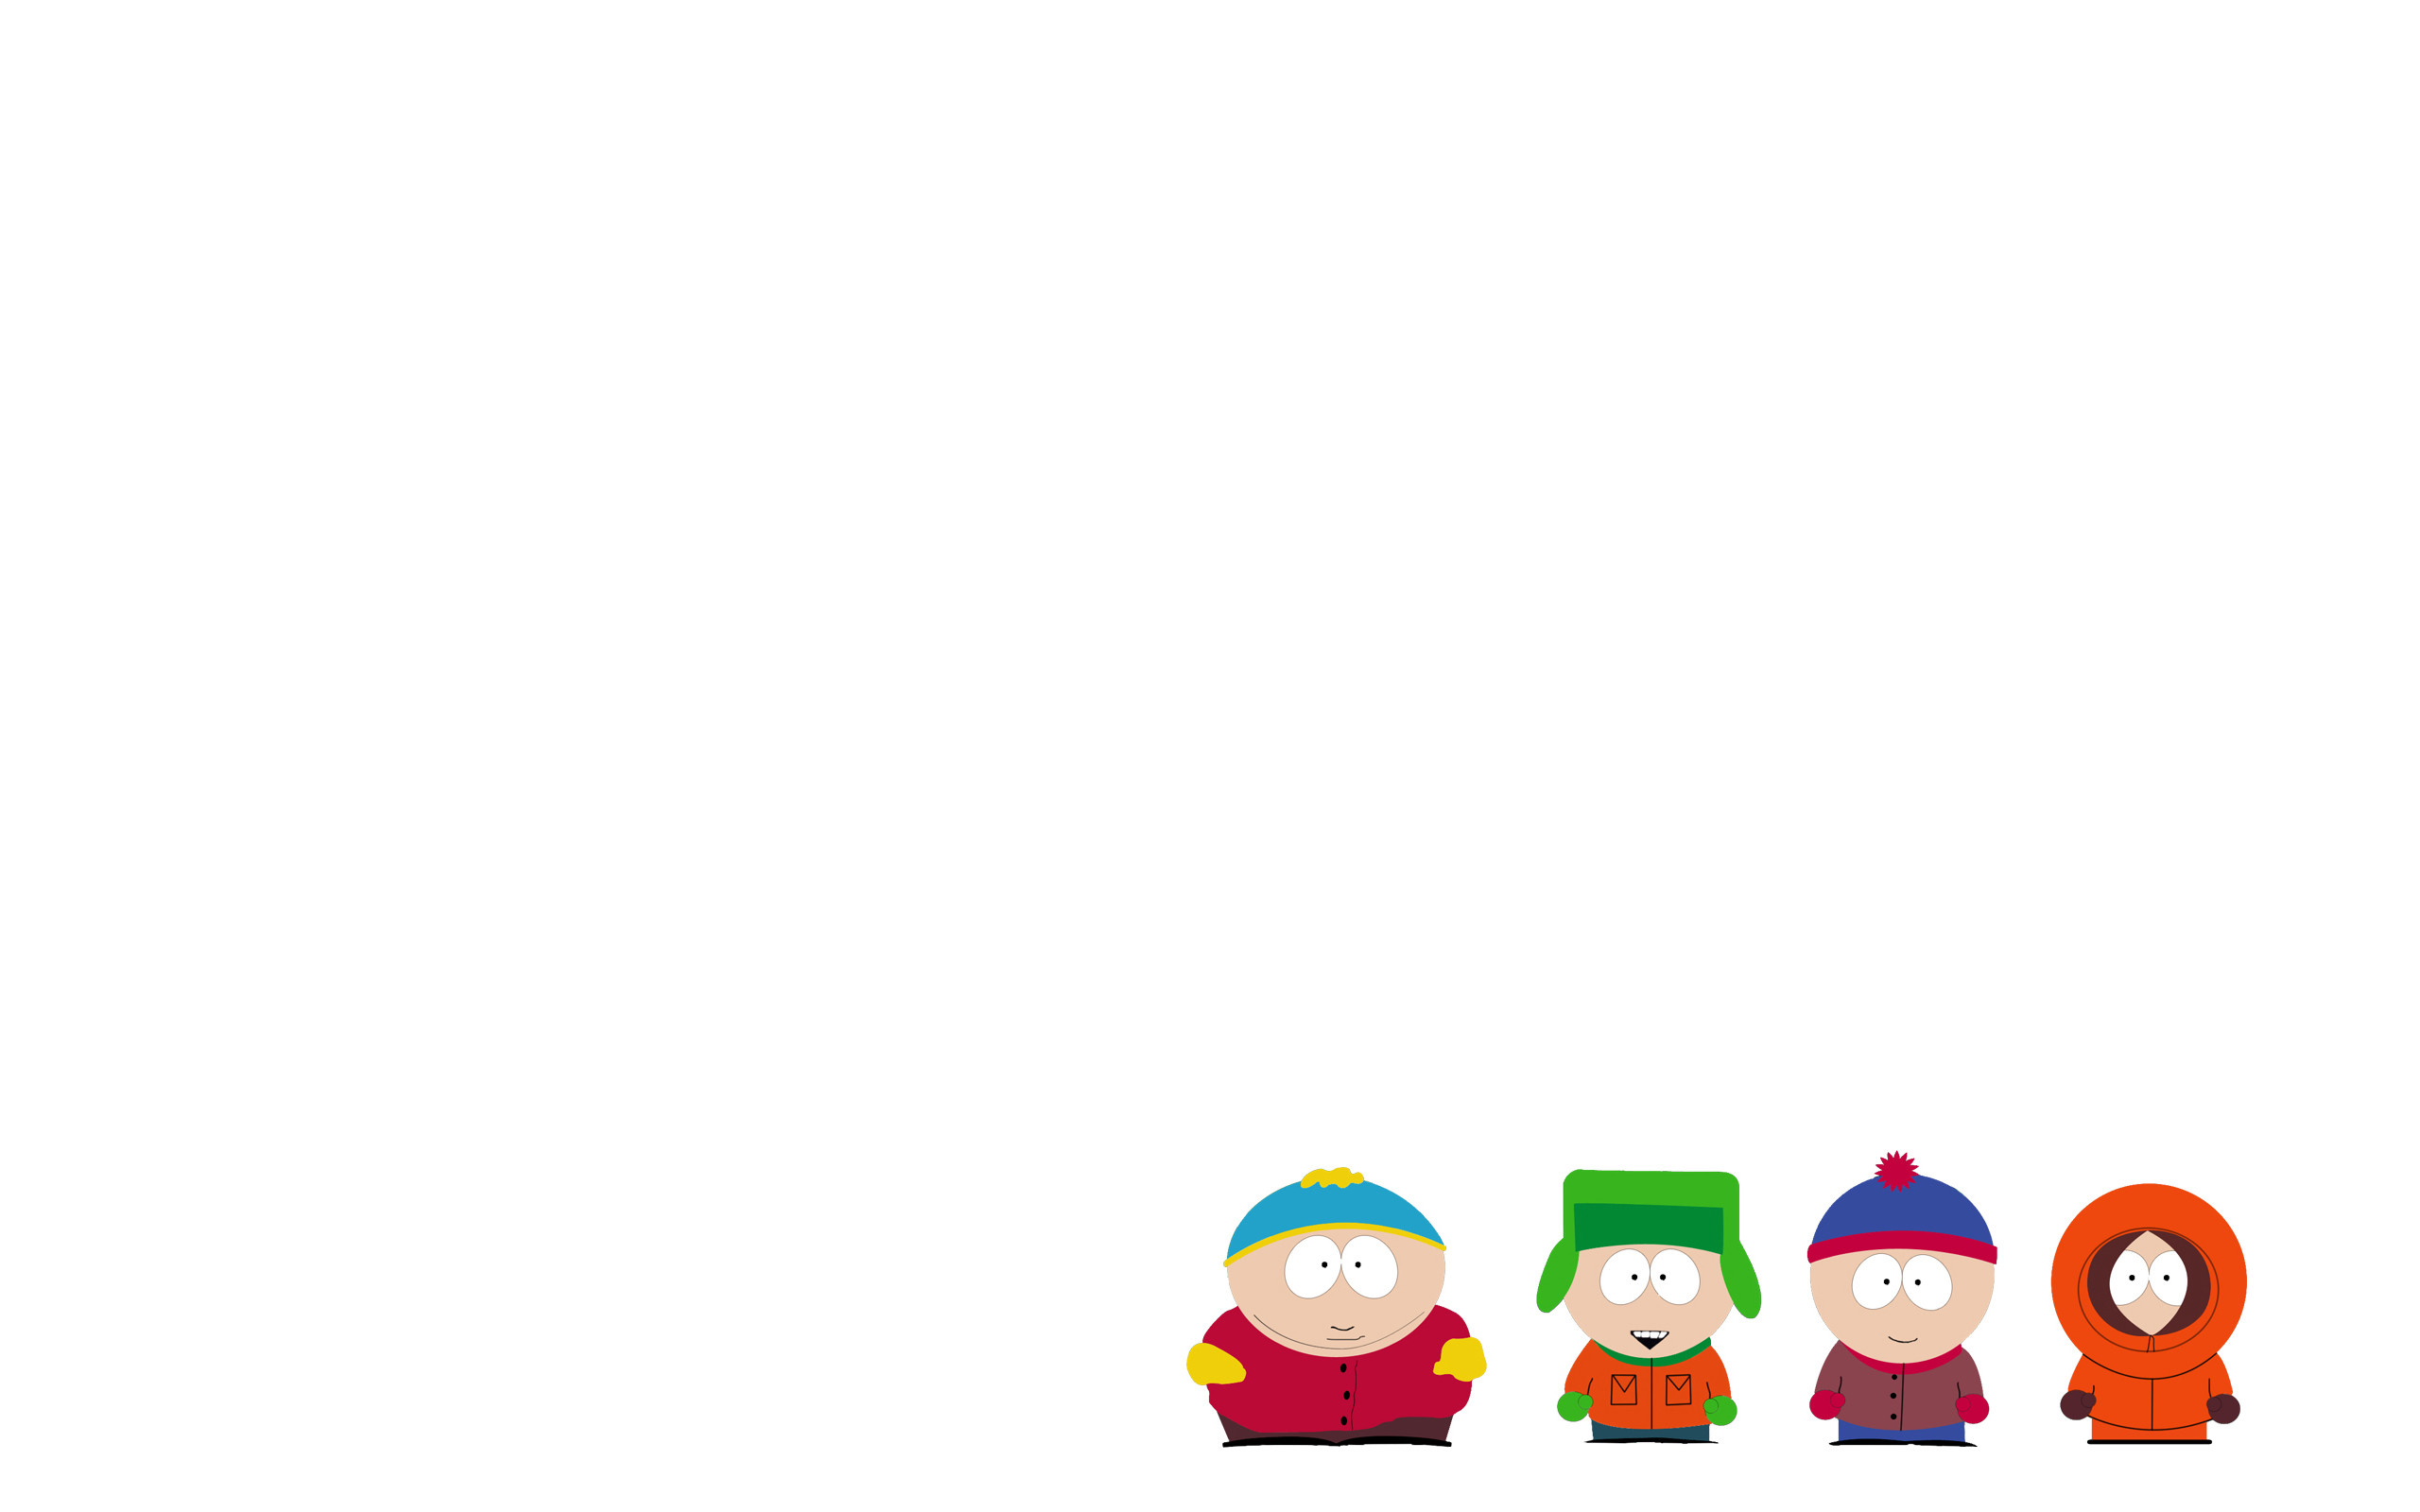 2560x1600 Non-Real Life South Park Minimalist Wallpaper I made ...